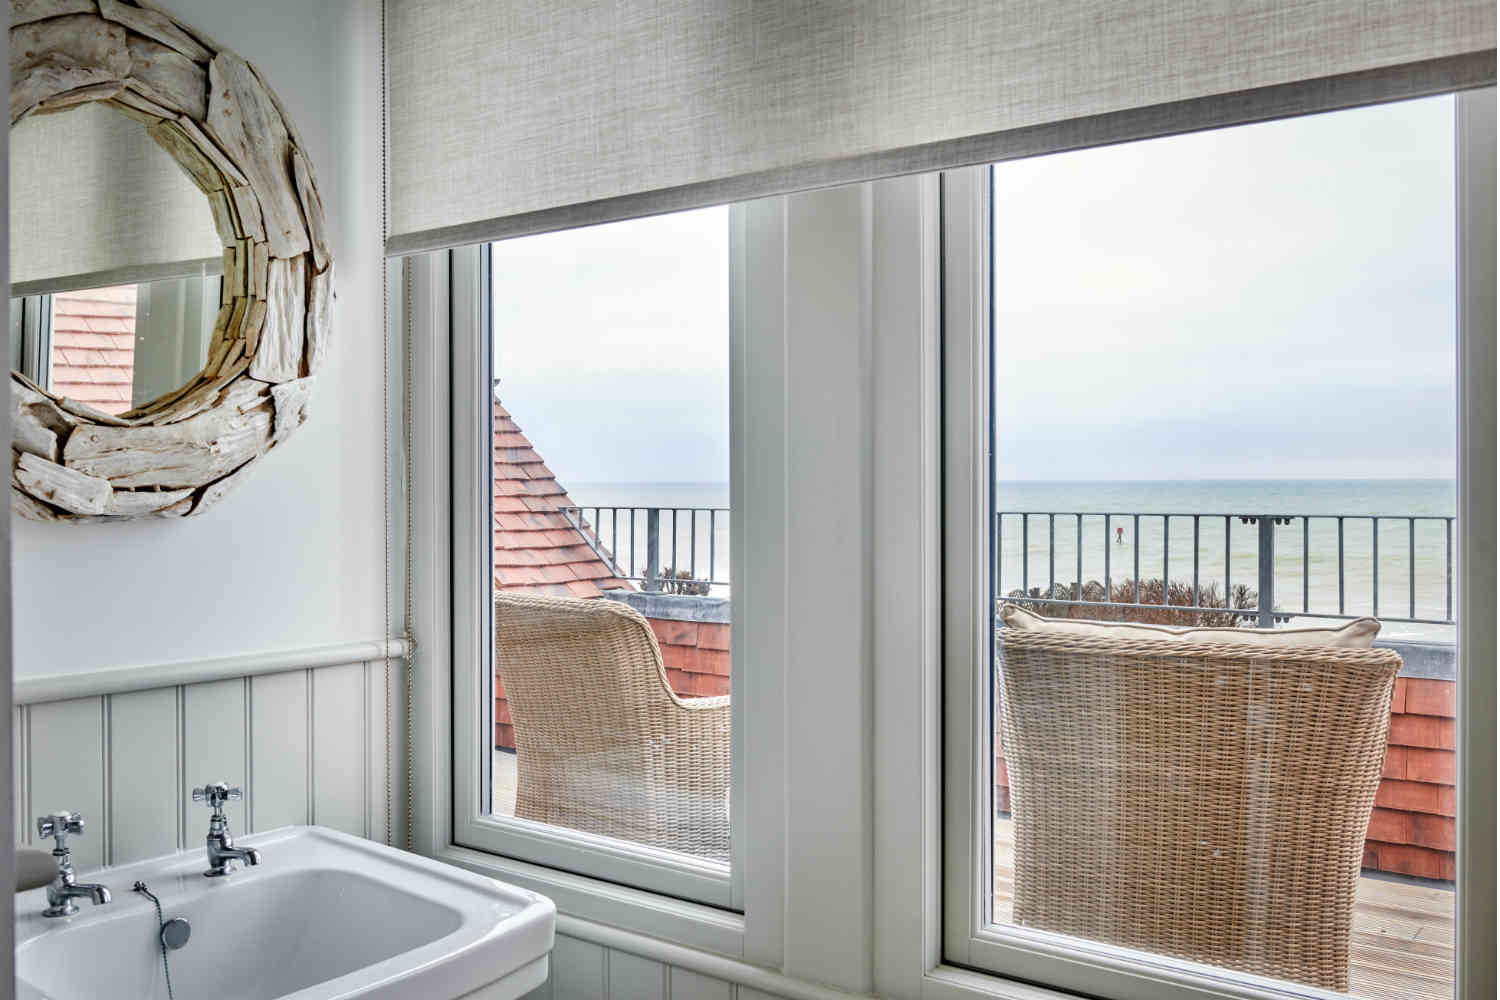 Flagstones - Bathroom overlooking balcony and sea